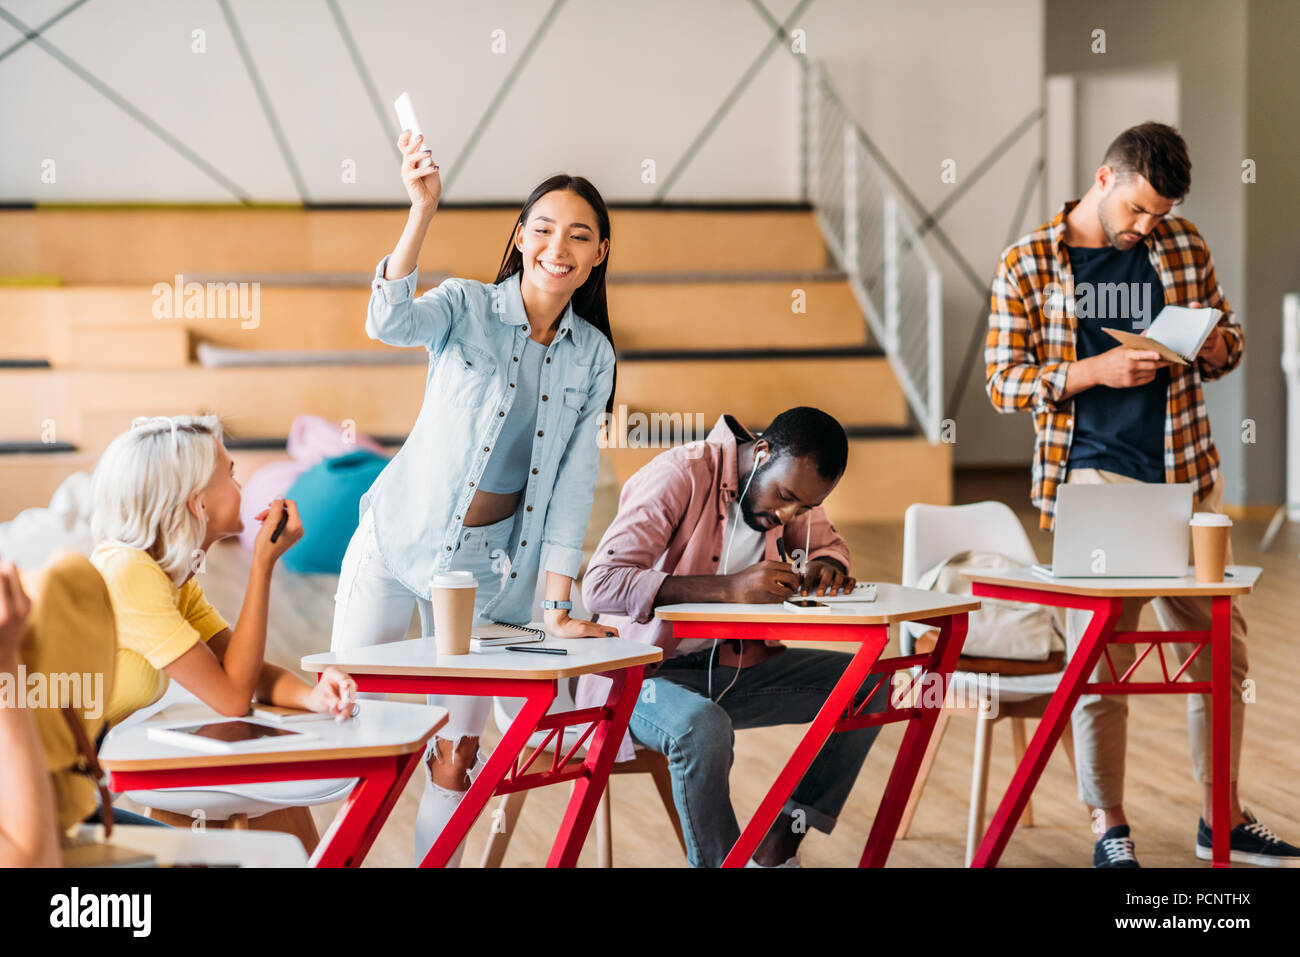 happy young students spending time together in lecture room Stock Photo